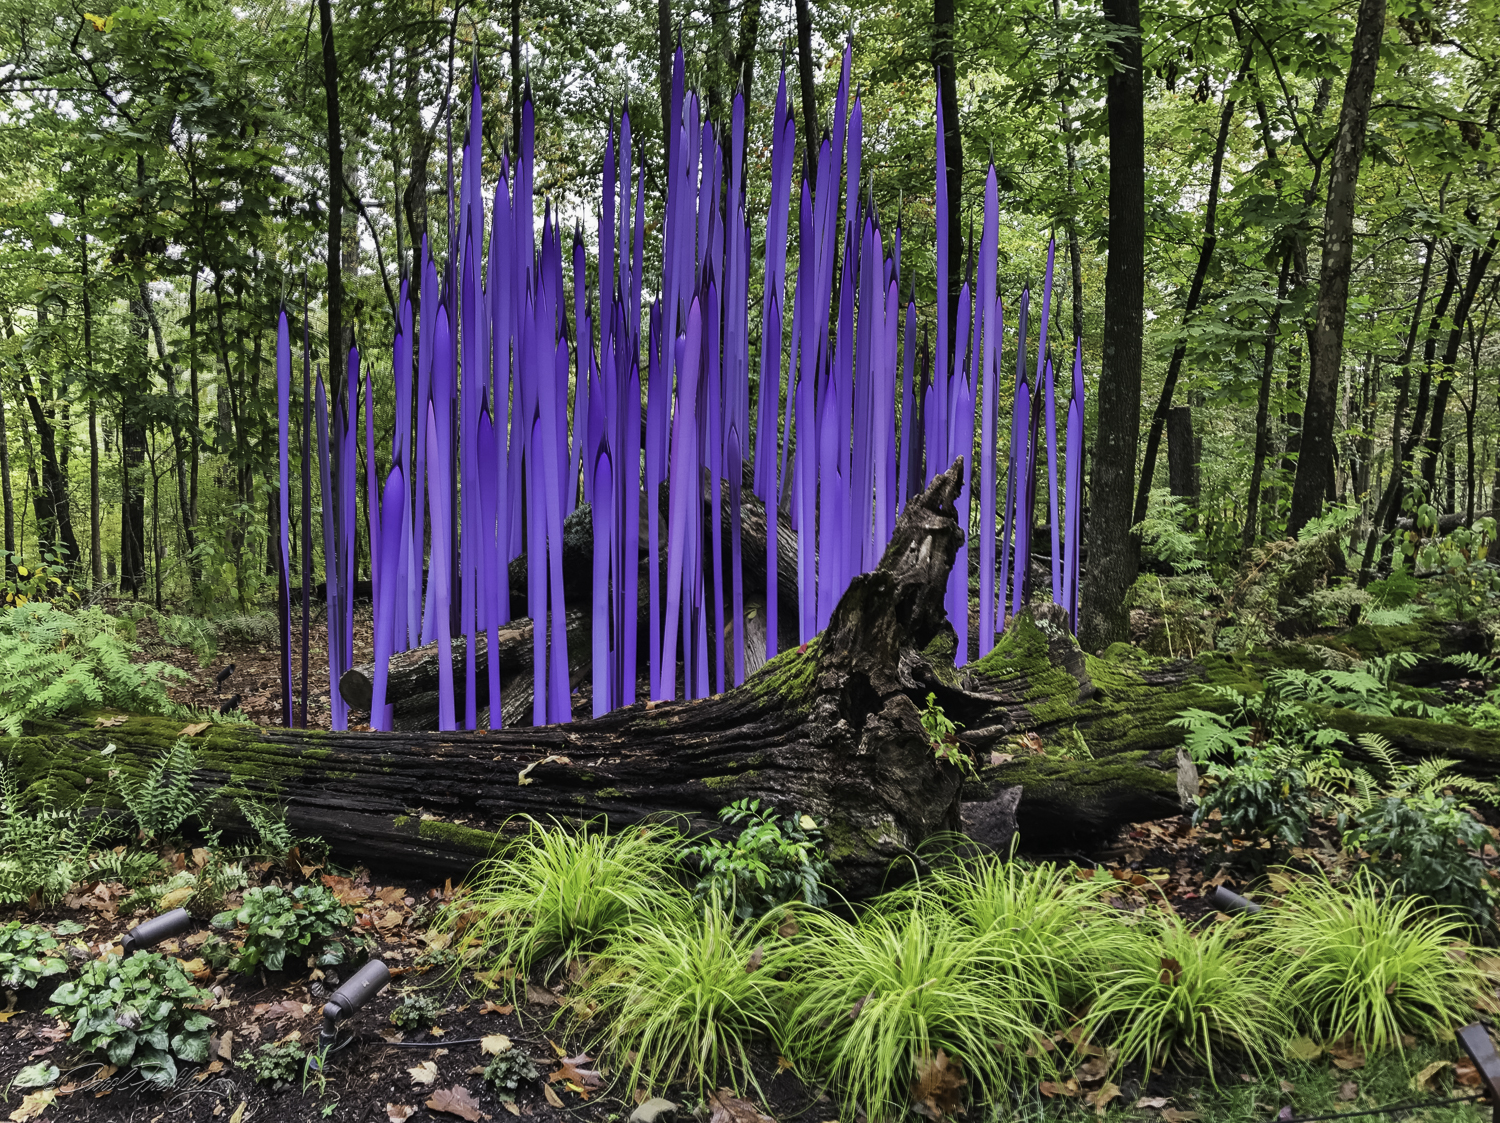 Chihuly in the Forest-21-12.jpg